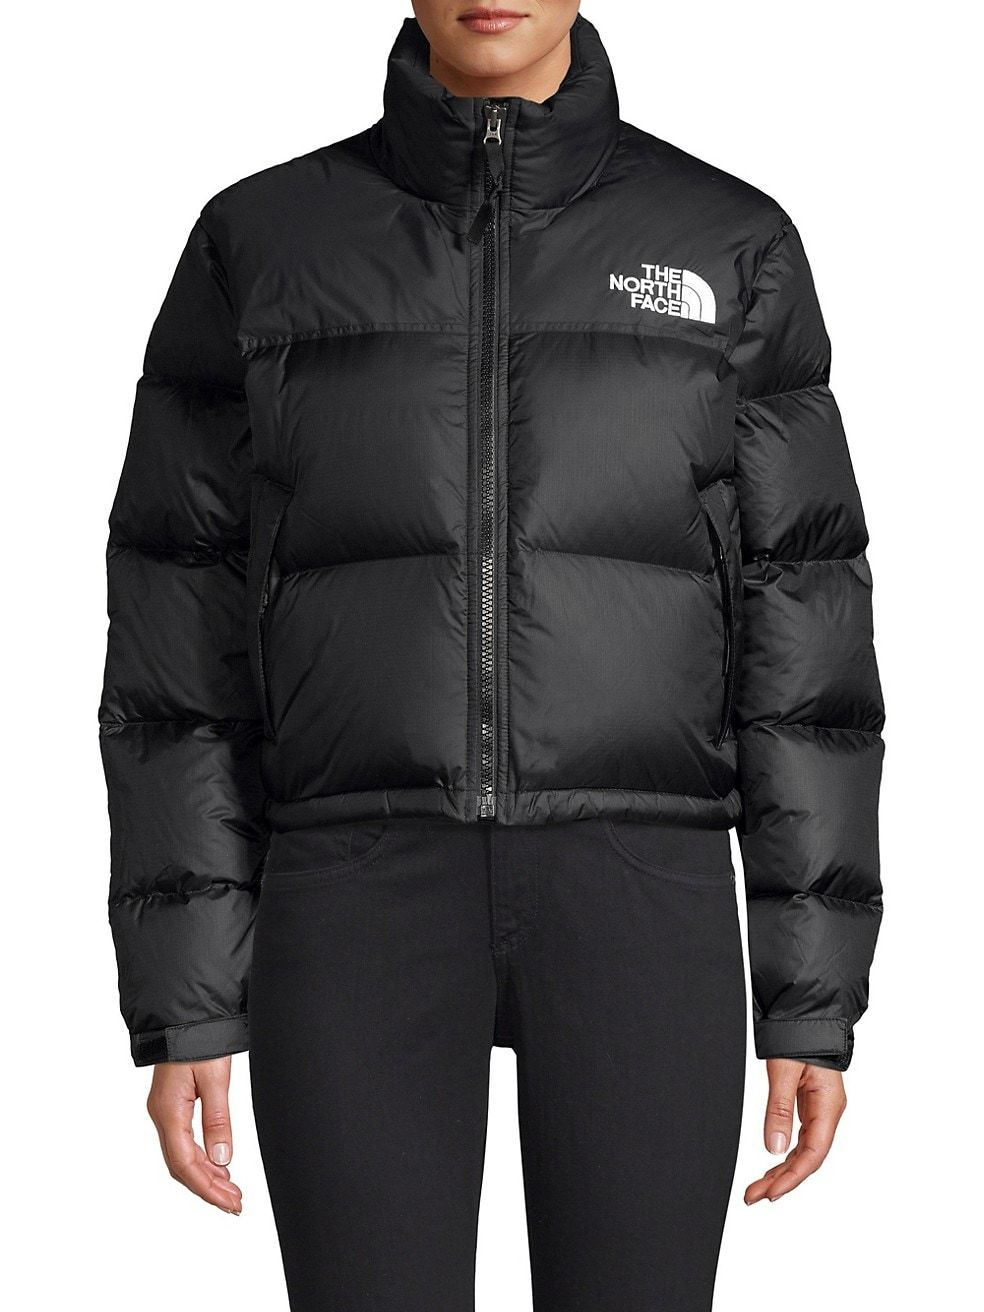 The North Face 1996 Nuptse Cropped Puffer Jacket Saksfifthavenue [ 1312 x 984 Pixel ]